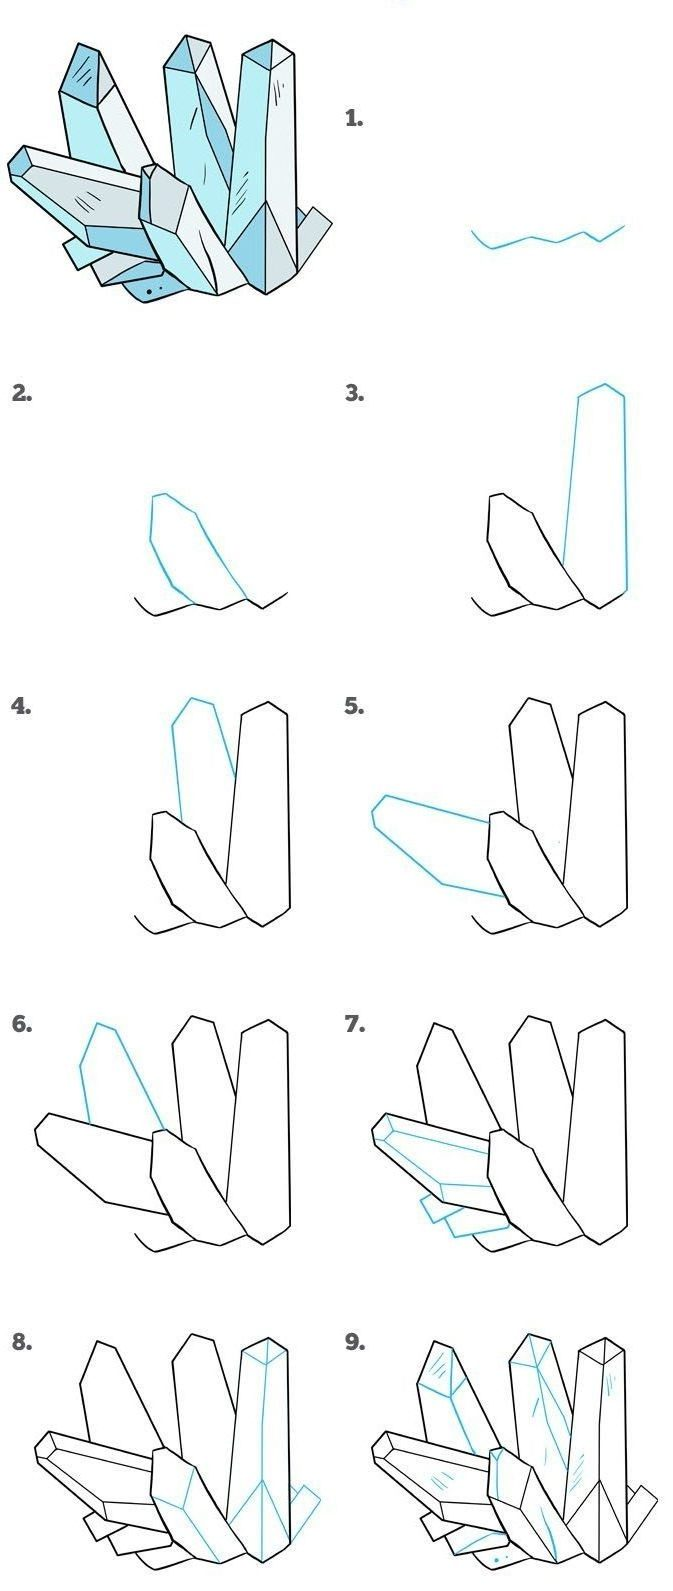 20 Easy Drawing Tutorials for Beginners - Cool Things to ...